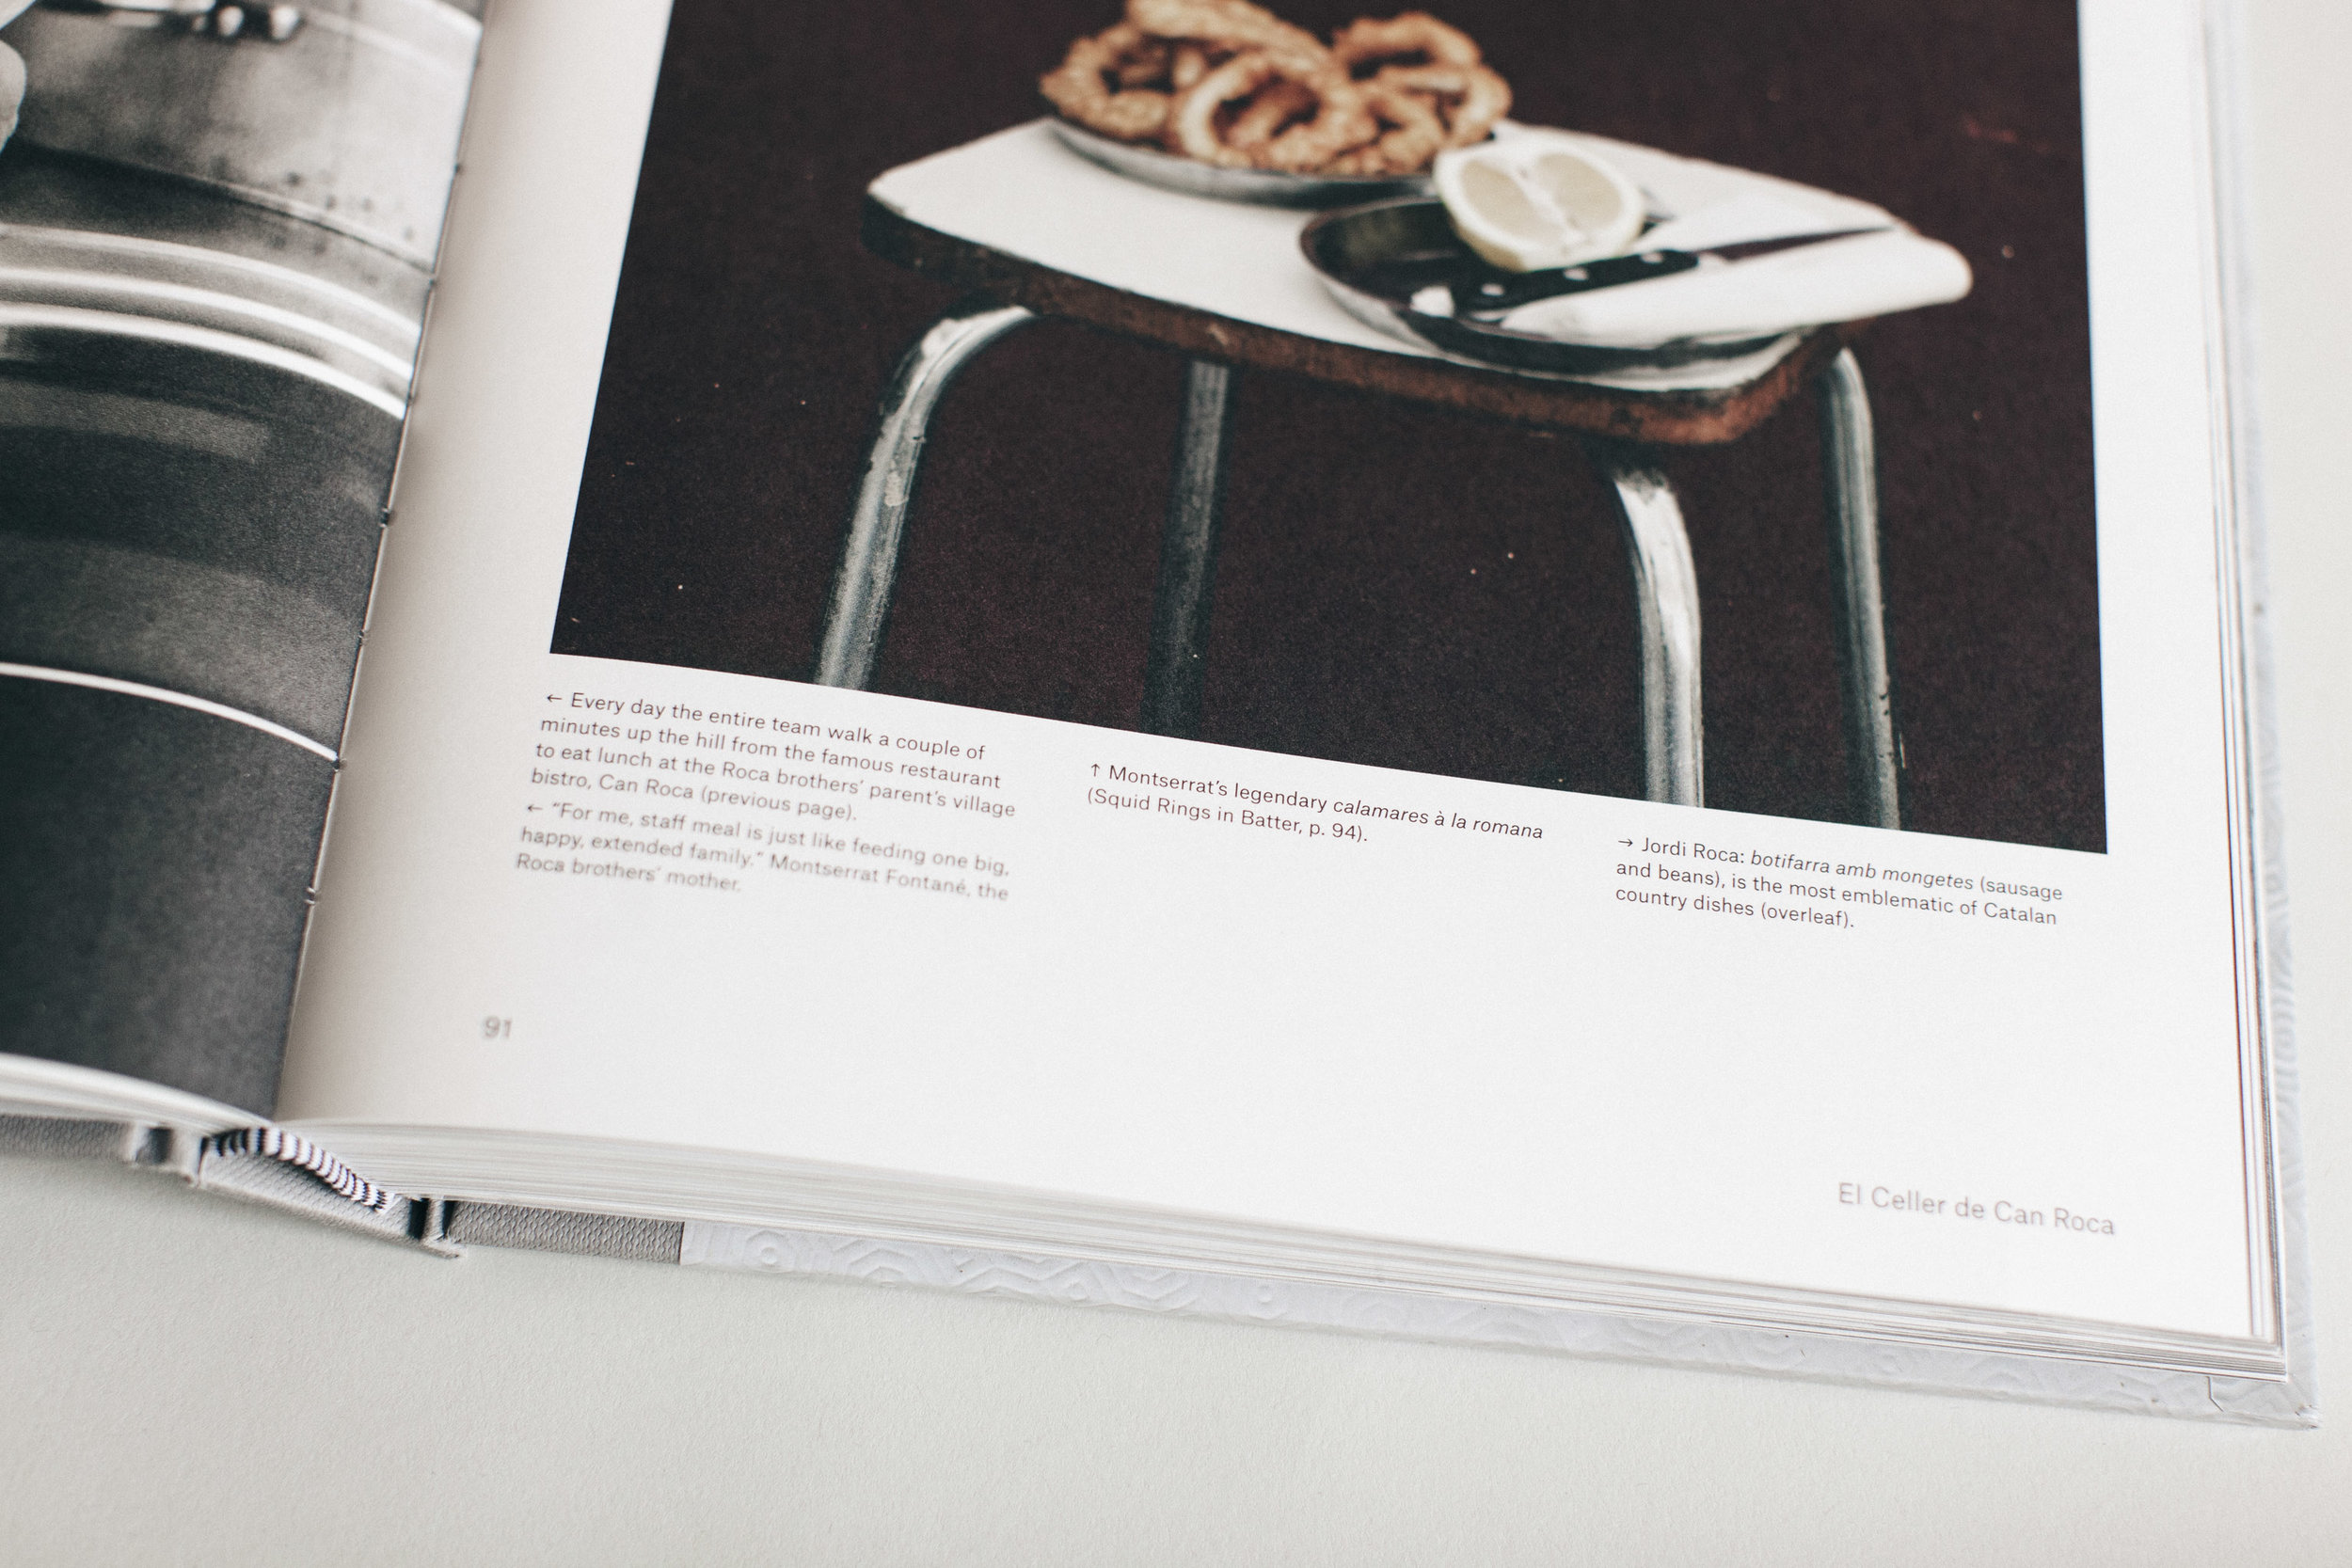 Eating with chefs recipe book review. Retreat // Food and lifestyle blog based in Sussex. Photography by Emma Gutteridge.